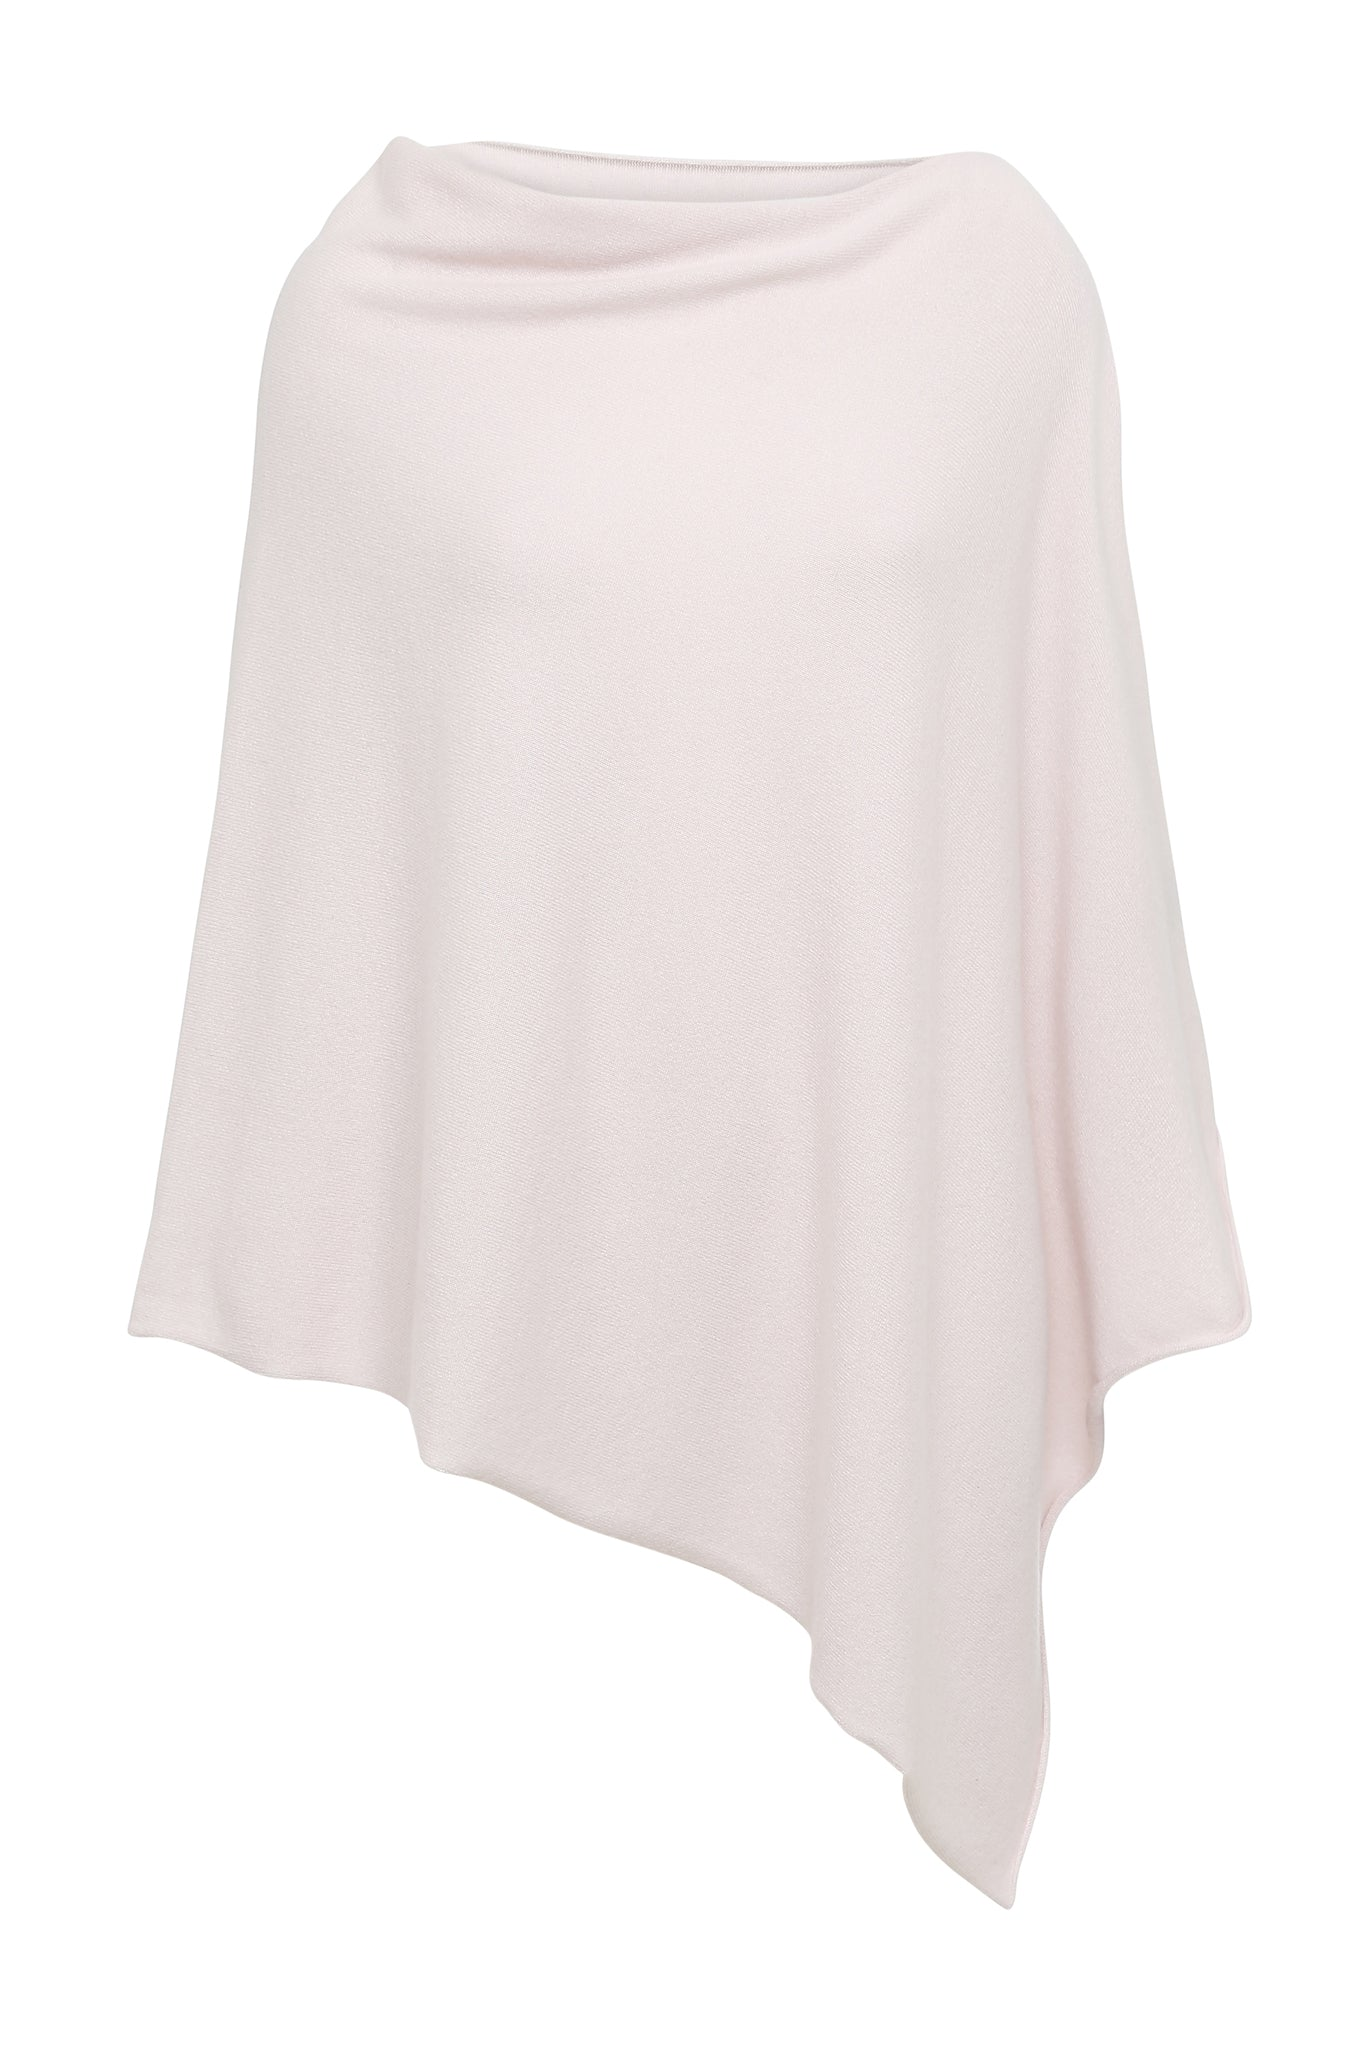 My - poncho, asymetrisk - Light Pink Pastel